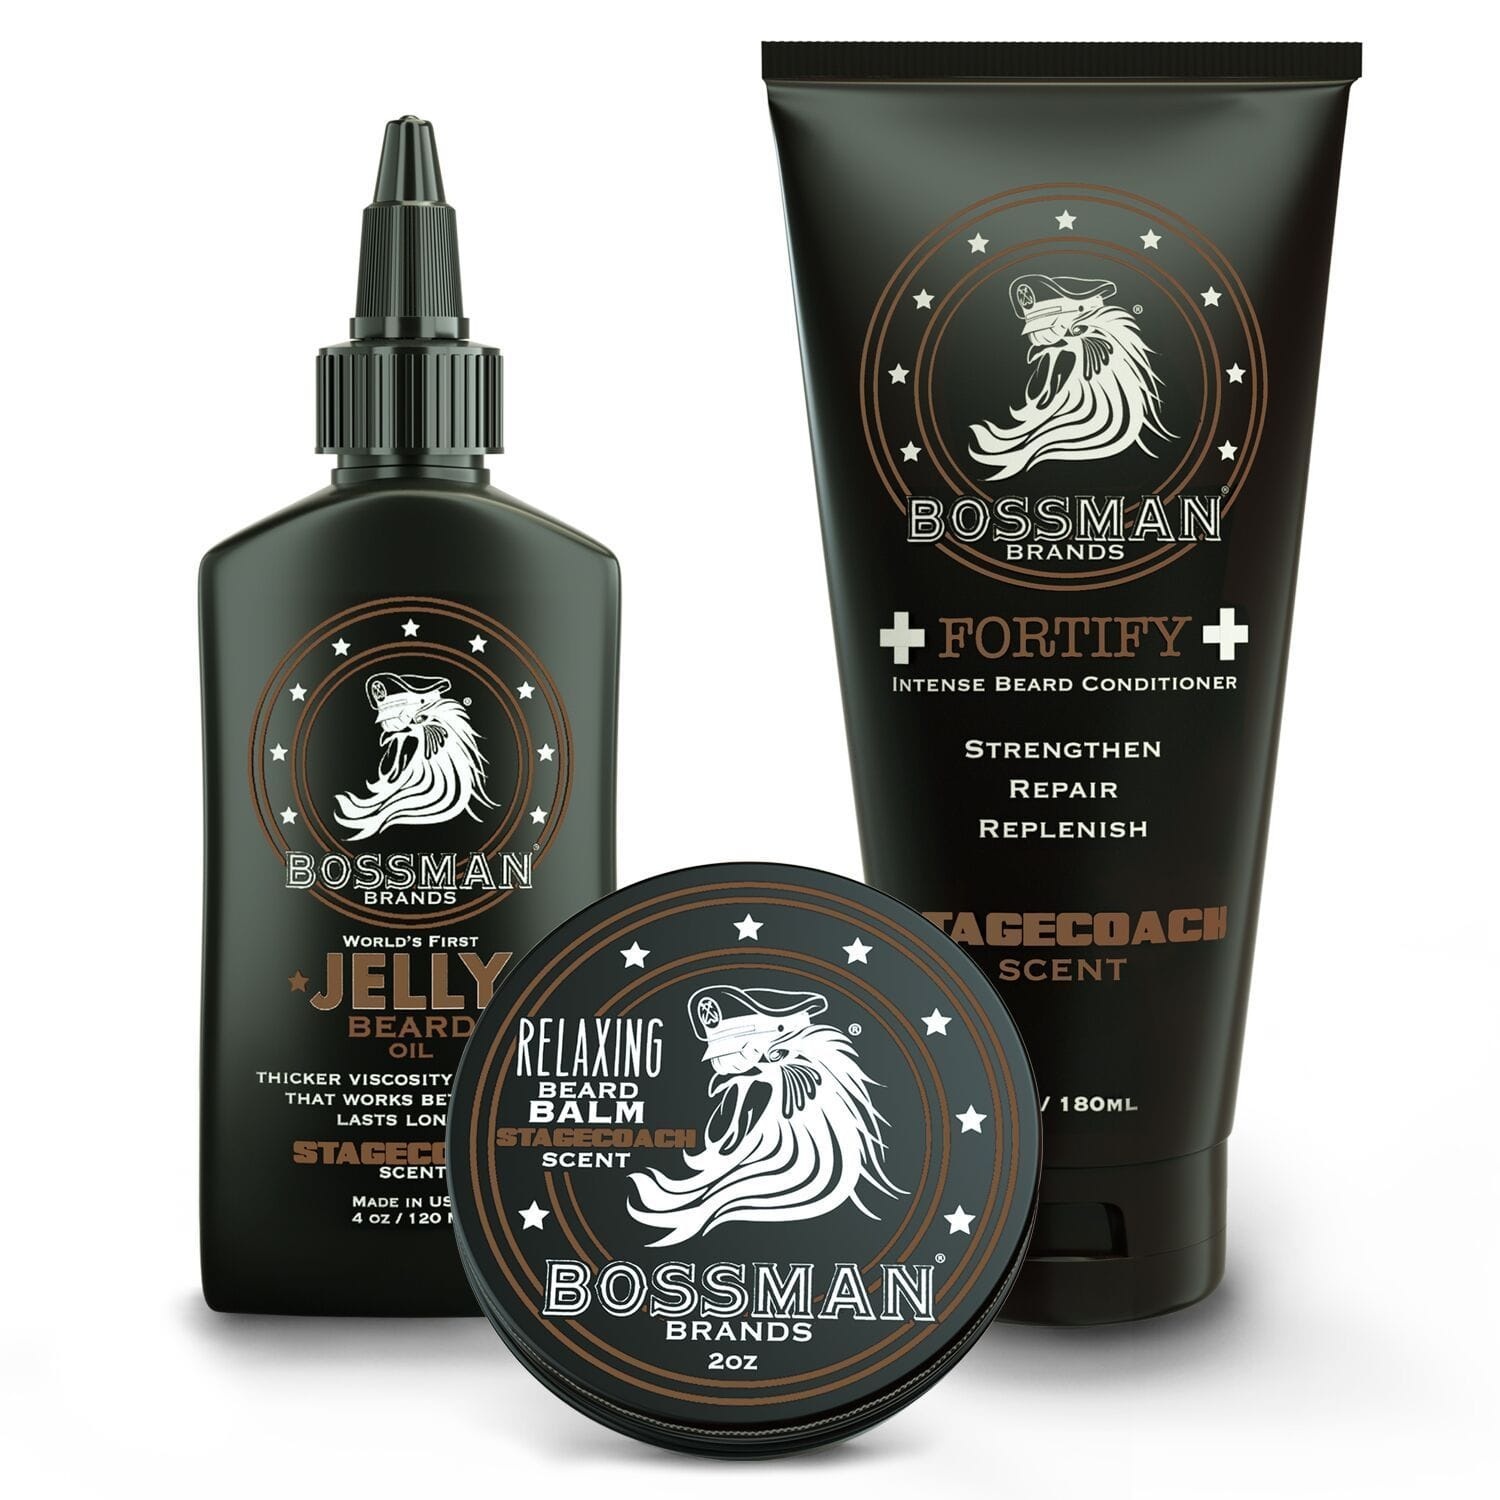 Bossman Essential Beard Care Kit - Stagecoach Scent